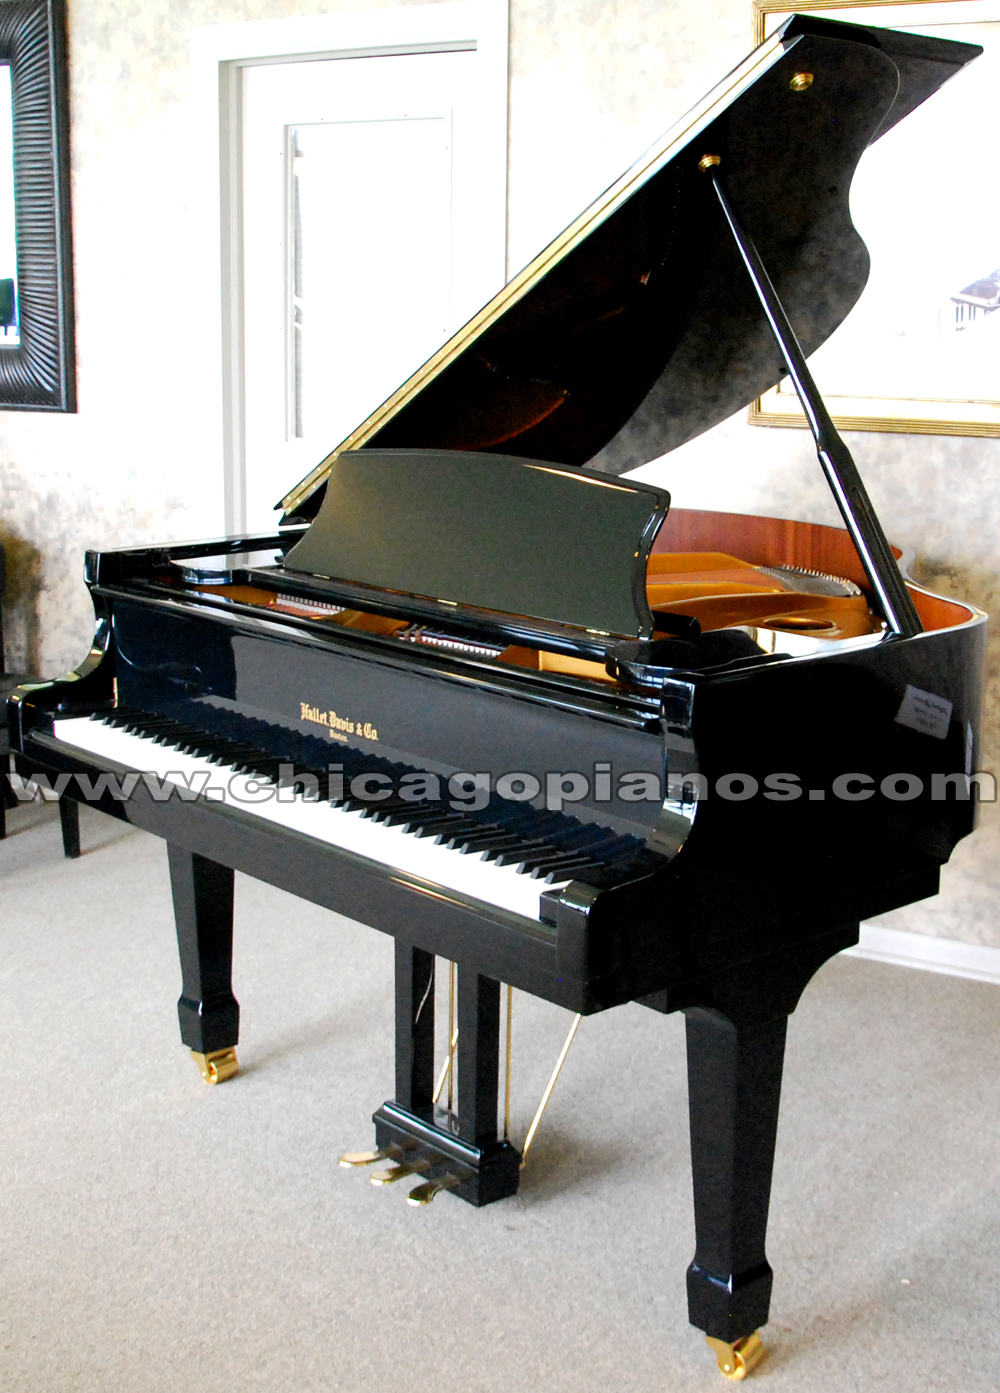 Hallet Davis Grand Pianos From Chicago Pianos Com